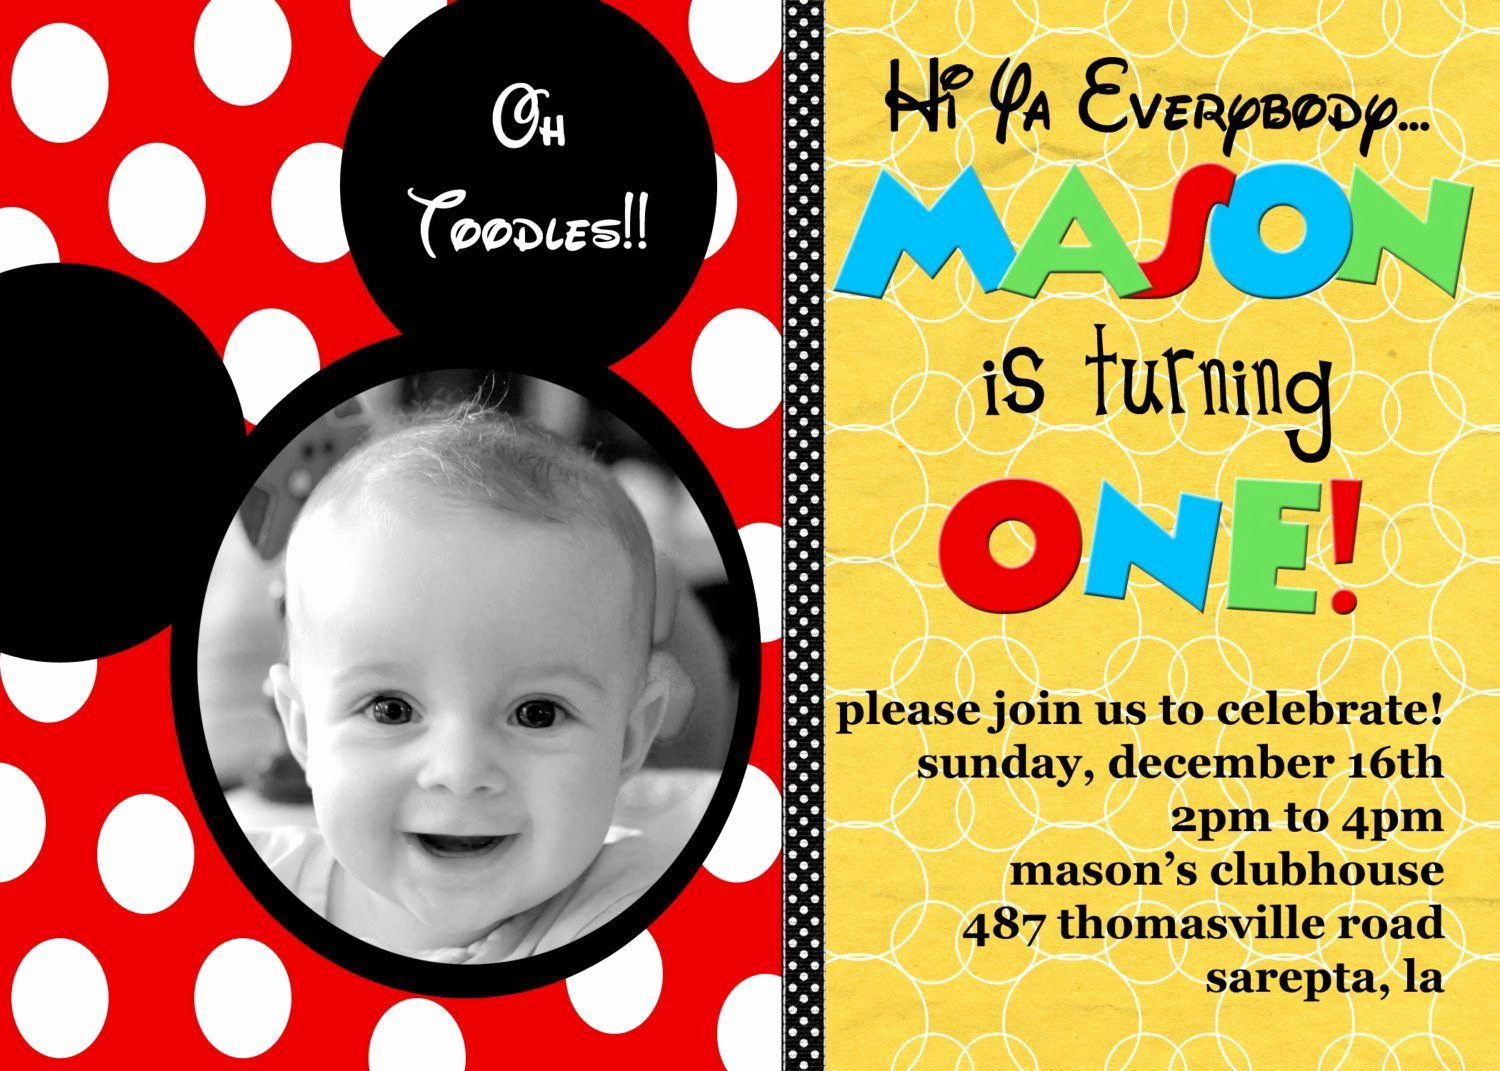 Mickey Mouse Invitation Card Luxury Free Printable Mickey Mouse Birthday Invitation Cards